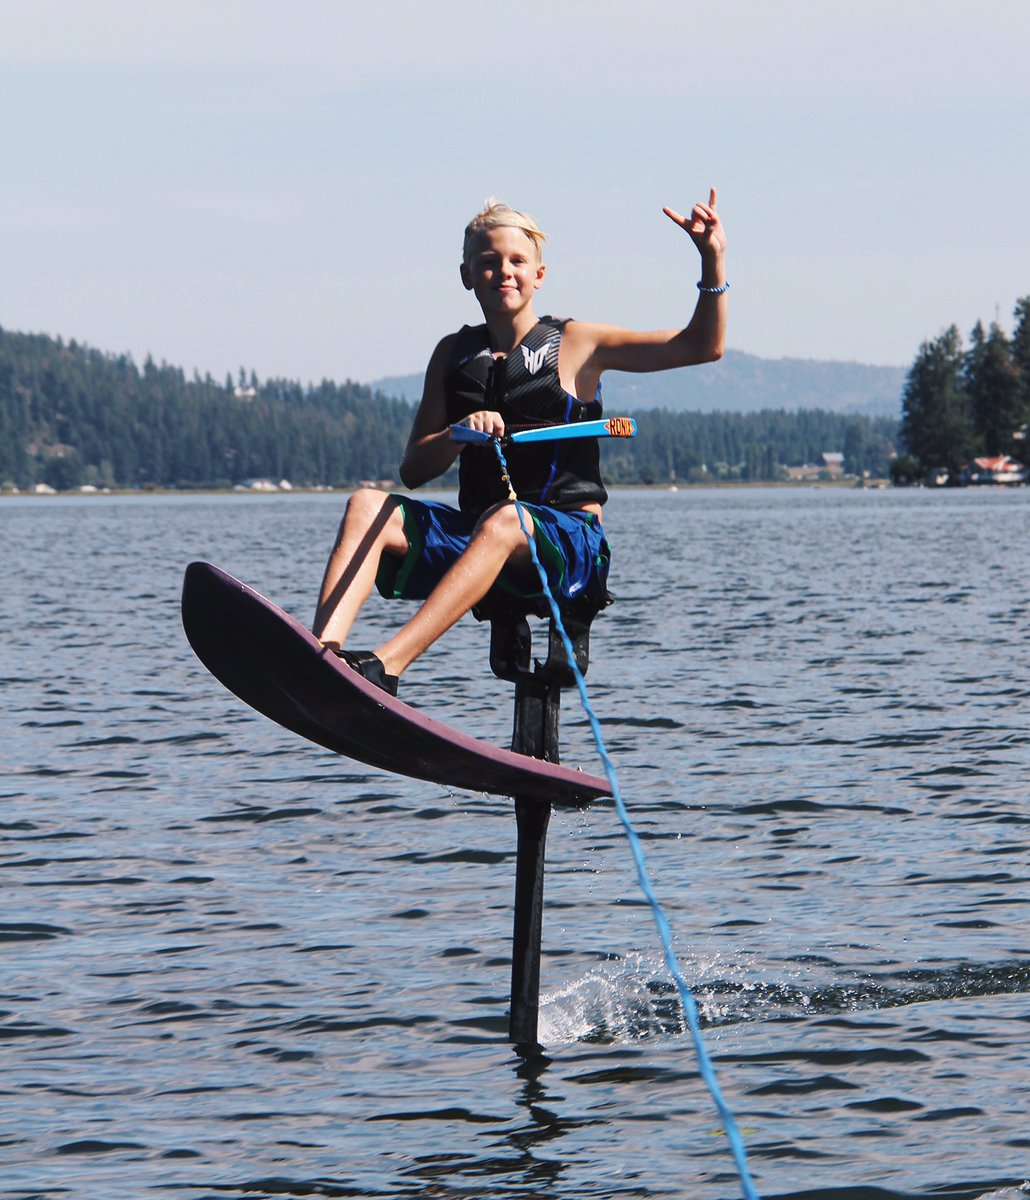 Carson Lueders on Twitter  Having a blast riding the air chair on the lake!??? check my snaps from yesterday - carsonlueders22u2026   & Carson Lueders on Twitter: